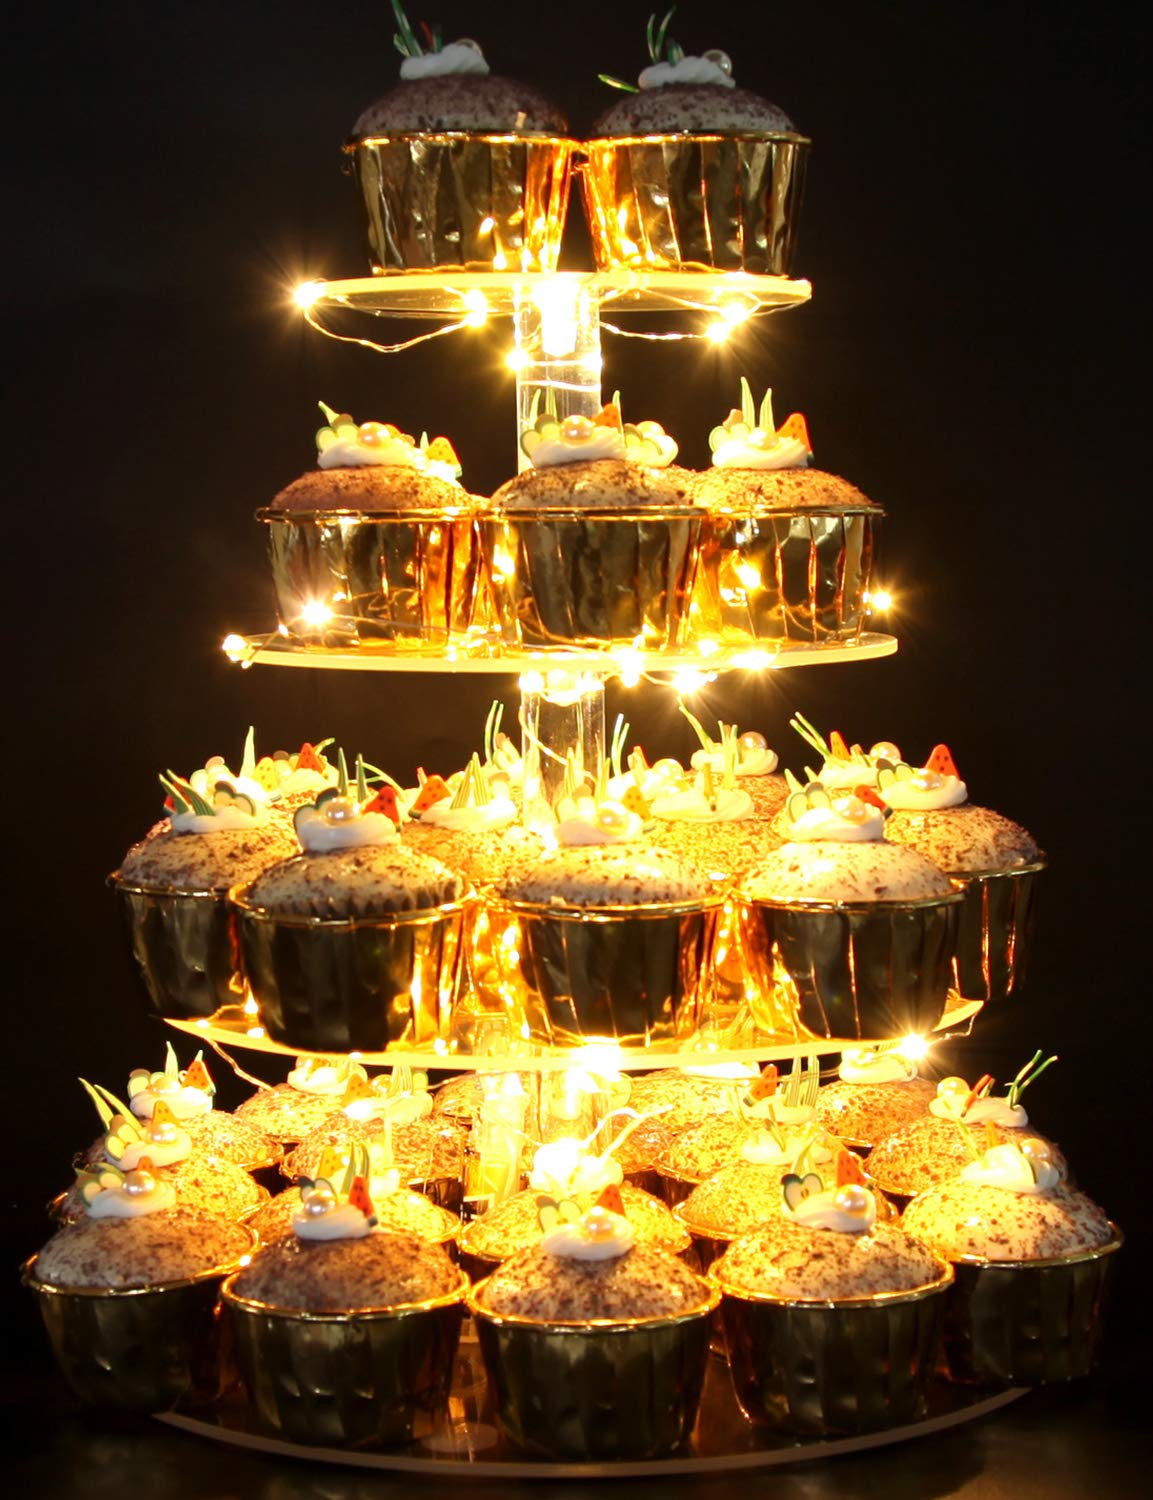 Vdomus Pastry Stand 4 Tier Acrylic Cupcake Display Stand with LED String Lights Dessert Tree Tower for Birthday/Wedding Party (Round)